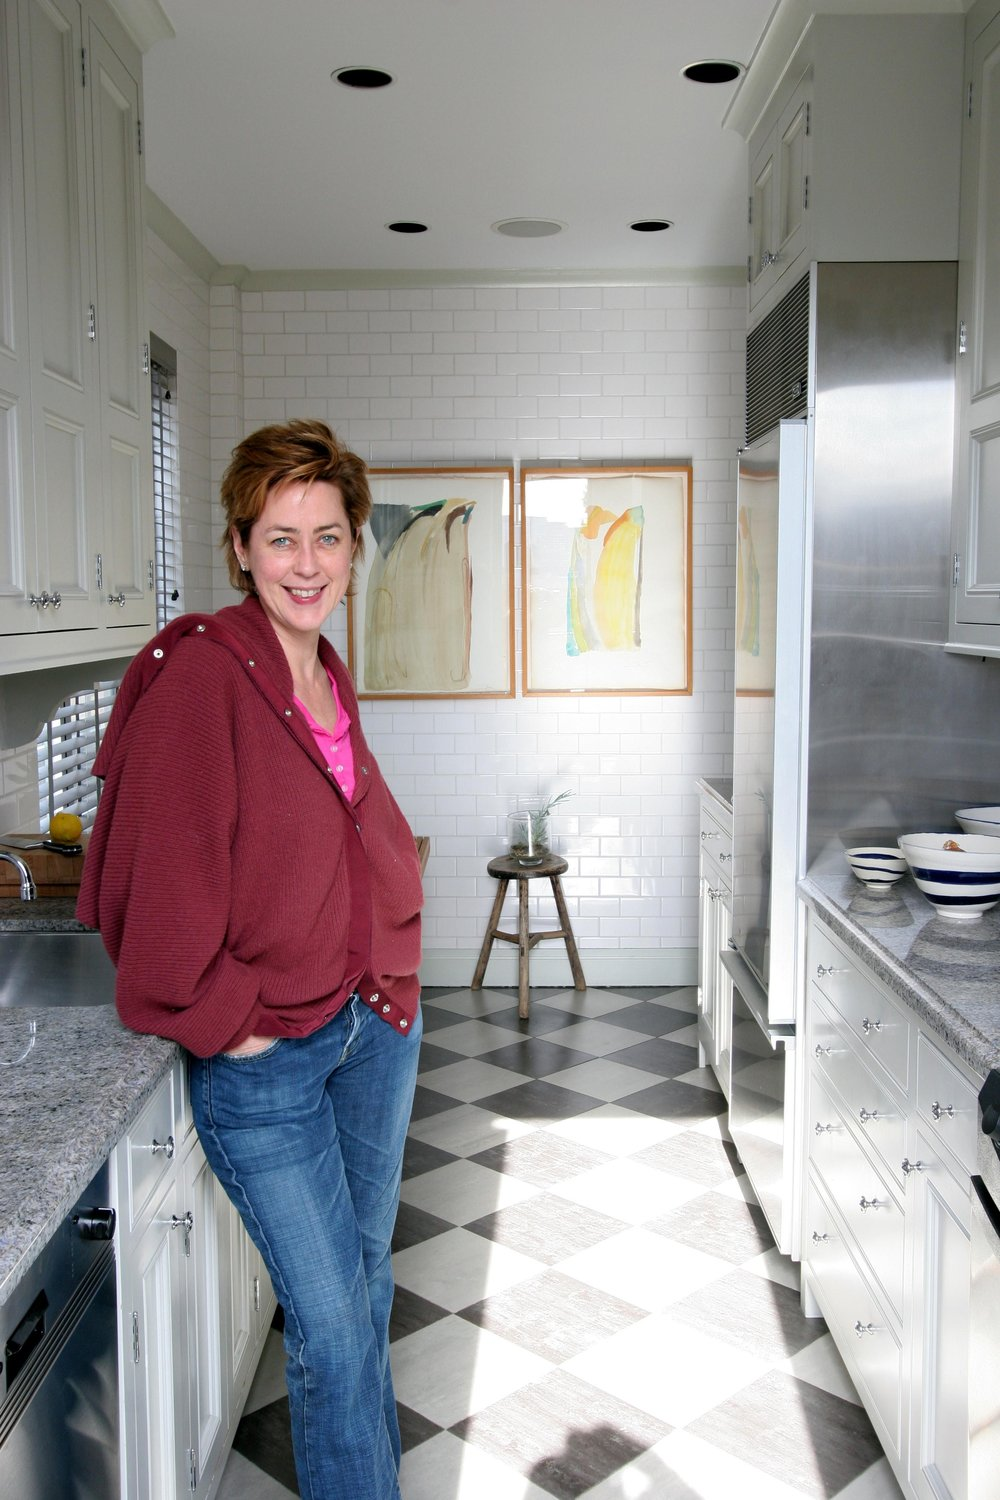 ellen in kitchen.JPG